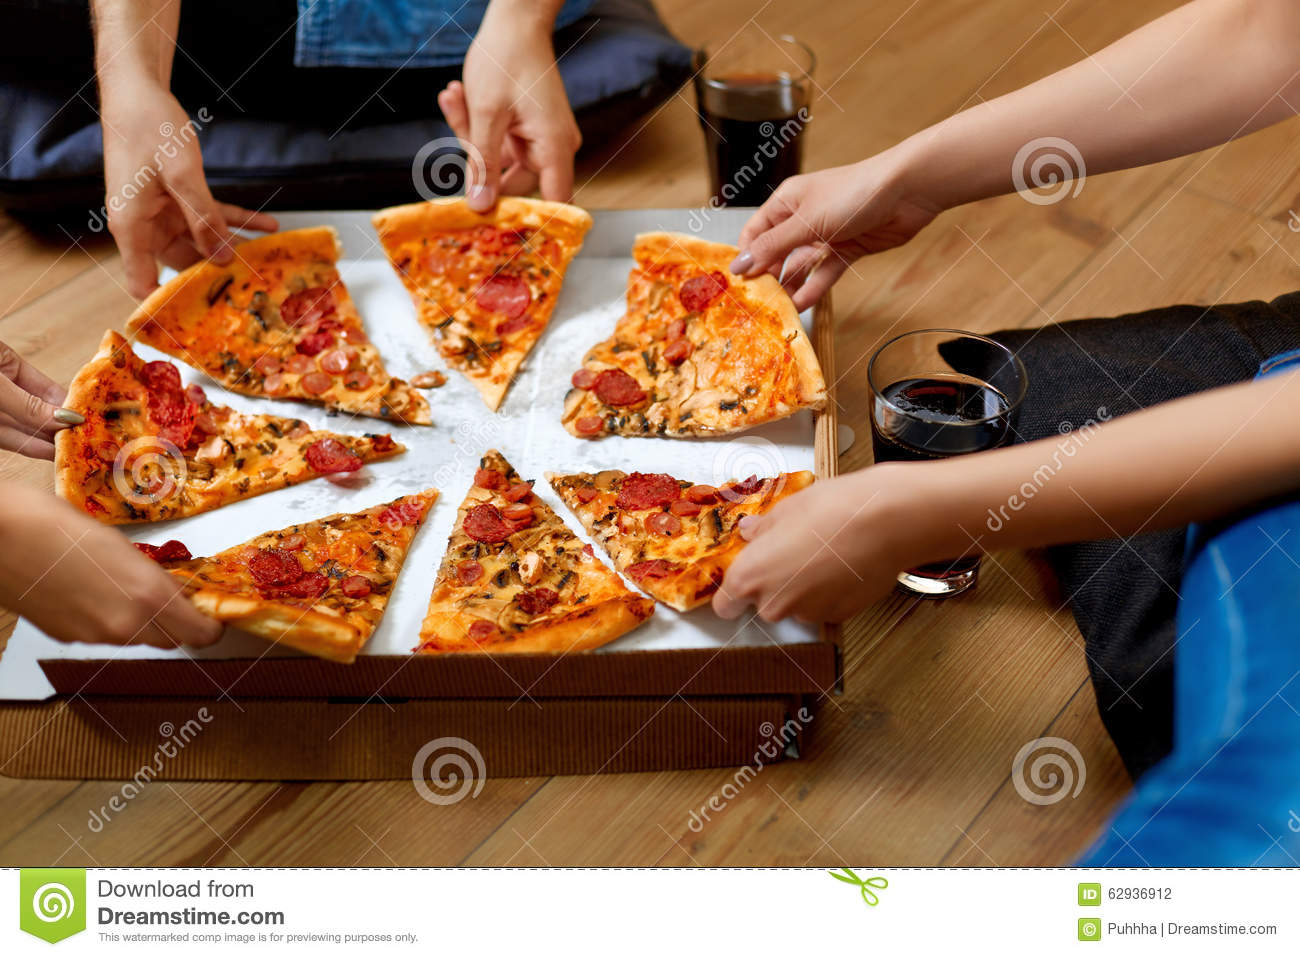 Eating Pizza Group Of Friends Sharing Pizza Fast Food